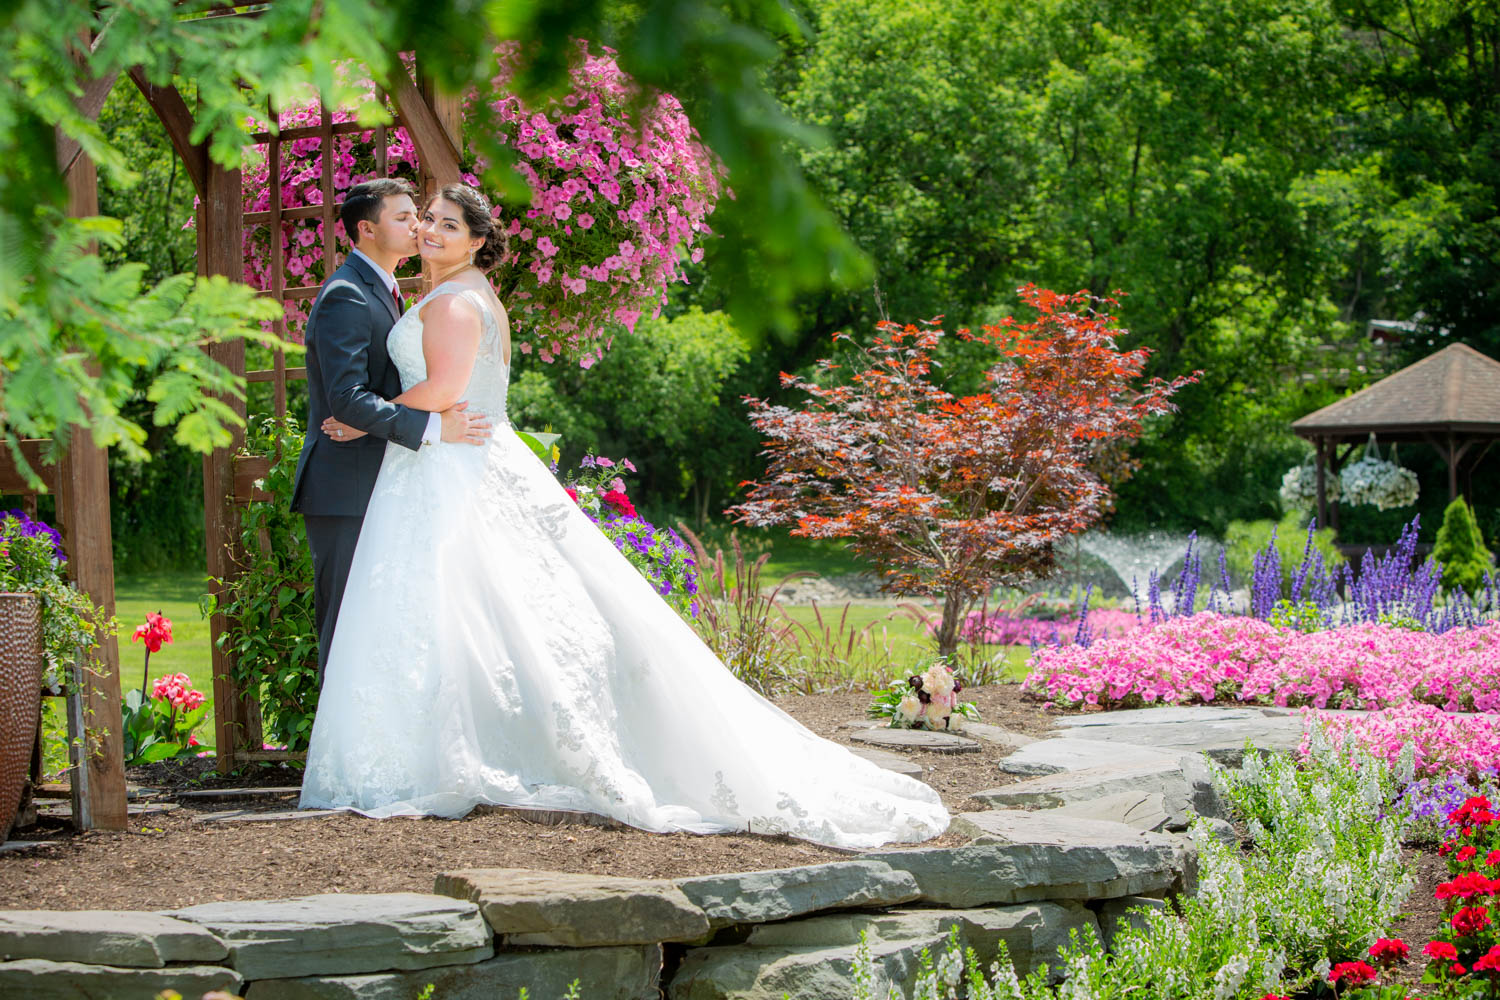 Finger-Lakes-Wedding-Photographer-Joe-Hy-Owego-NY-7288.jpg